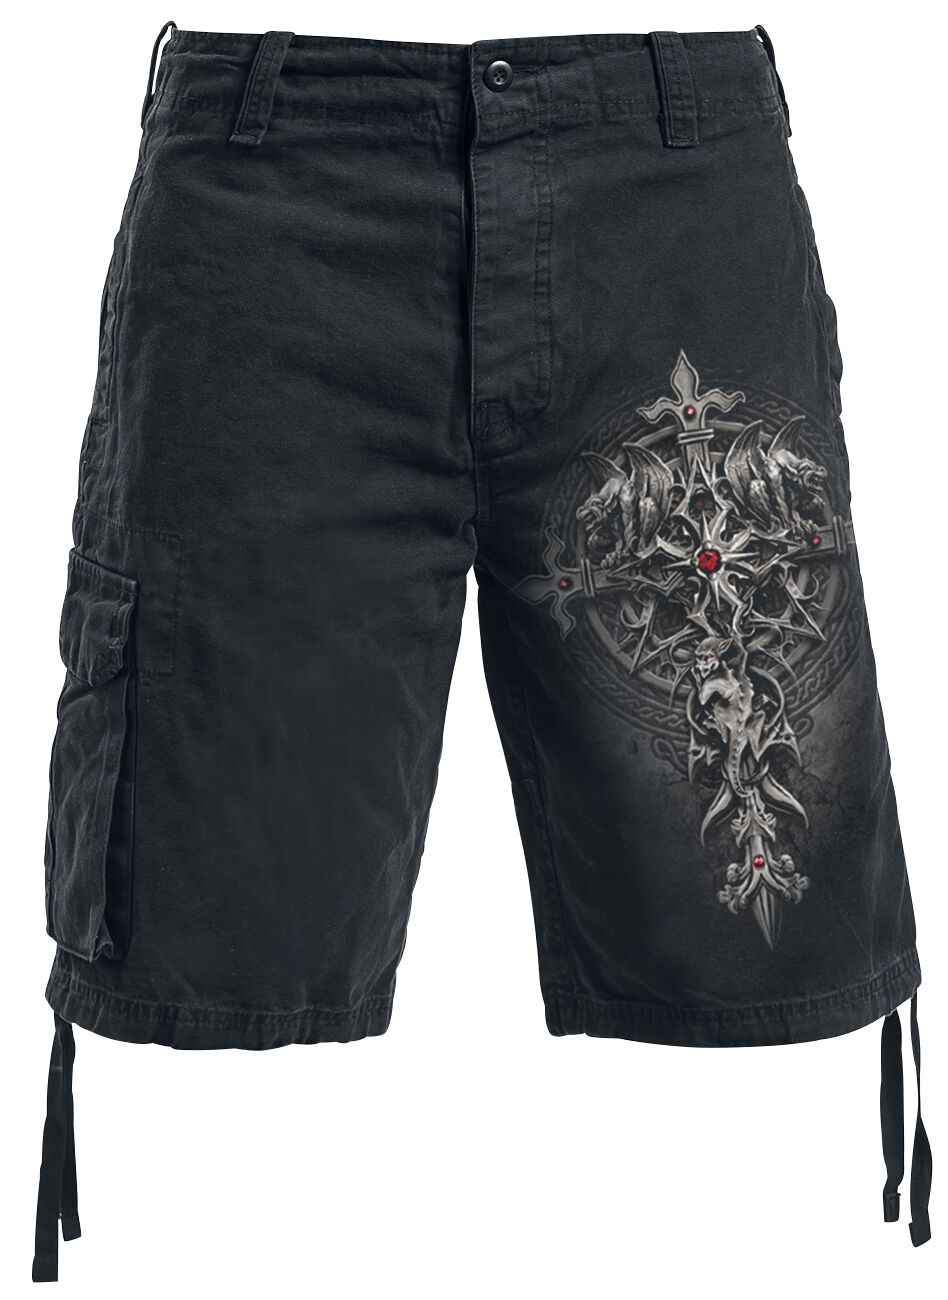 Image of   Spiral Custodian Vintage shorts sort